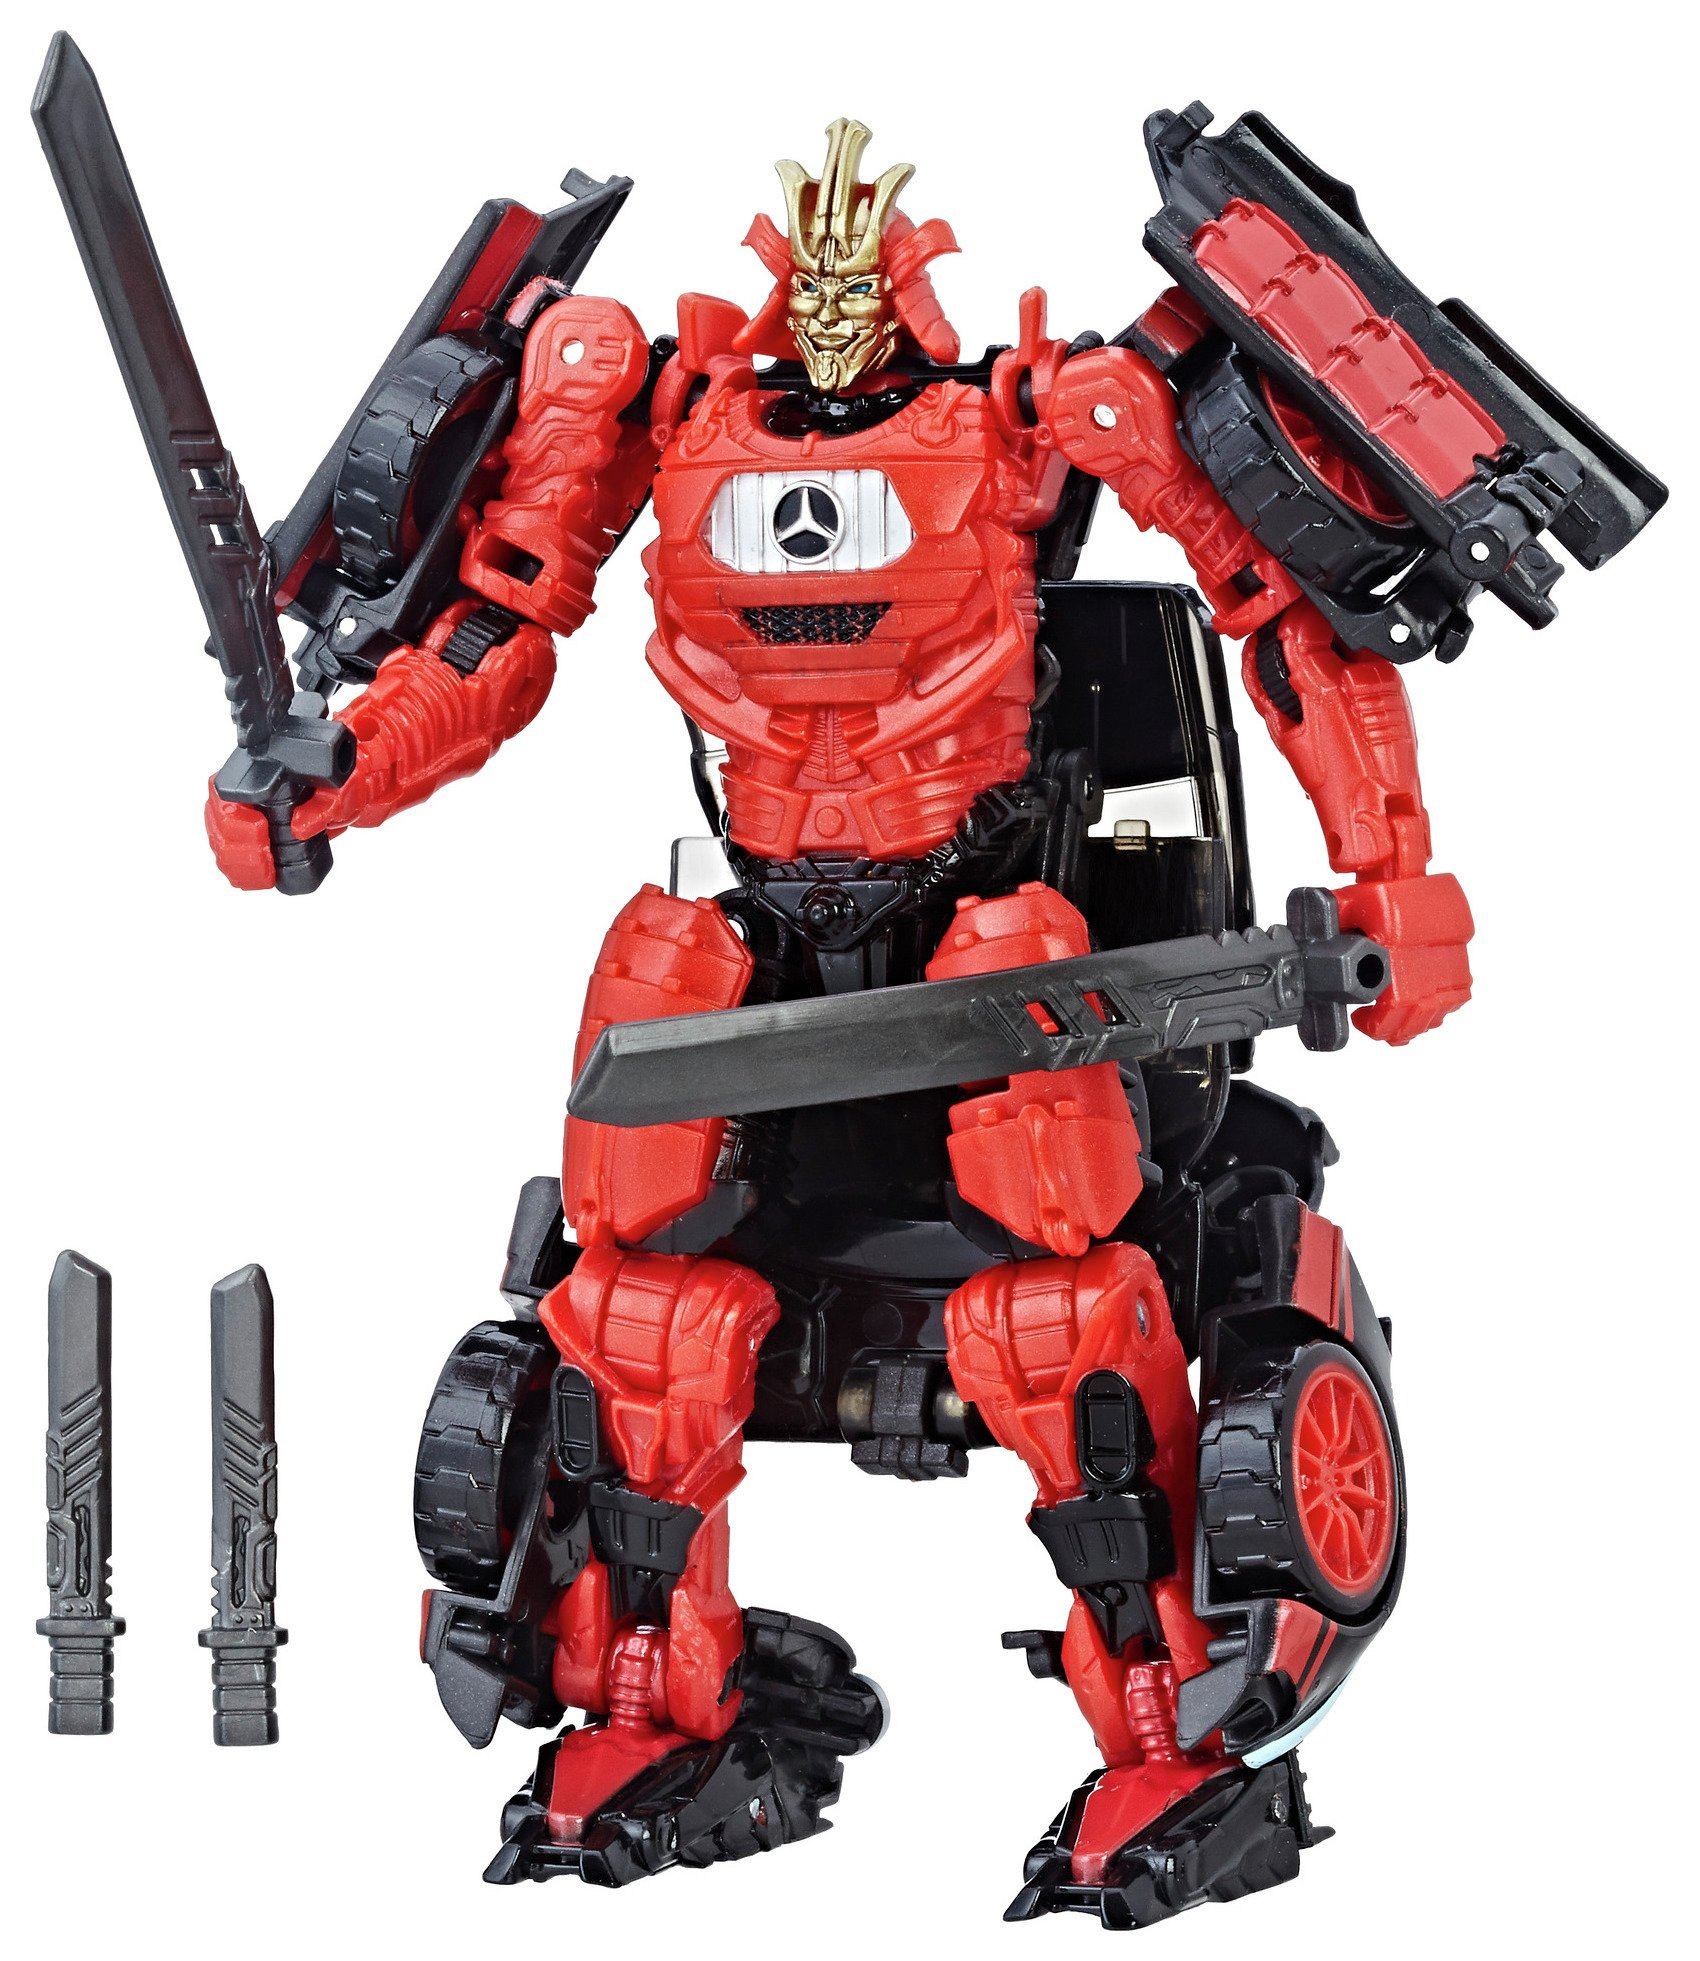 Image of Transformers Premier Edition Deluxe Autobot Drift